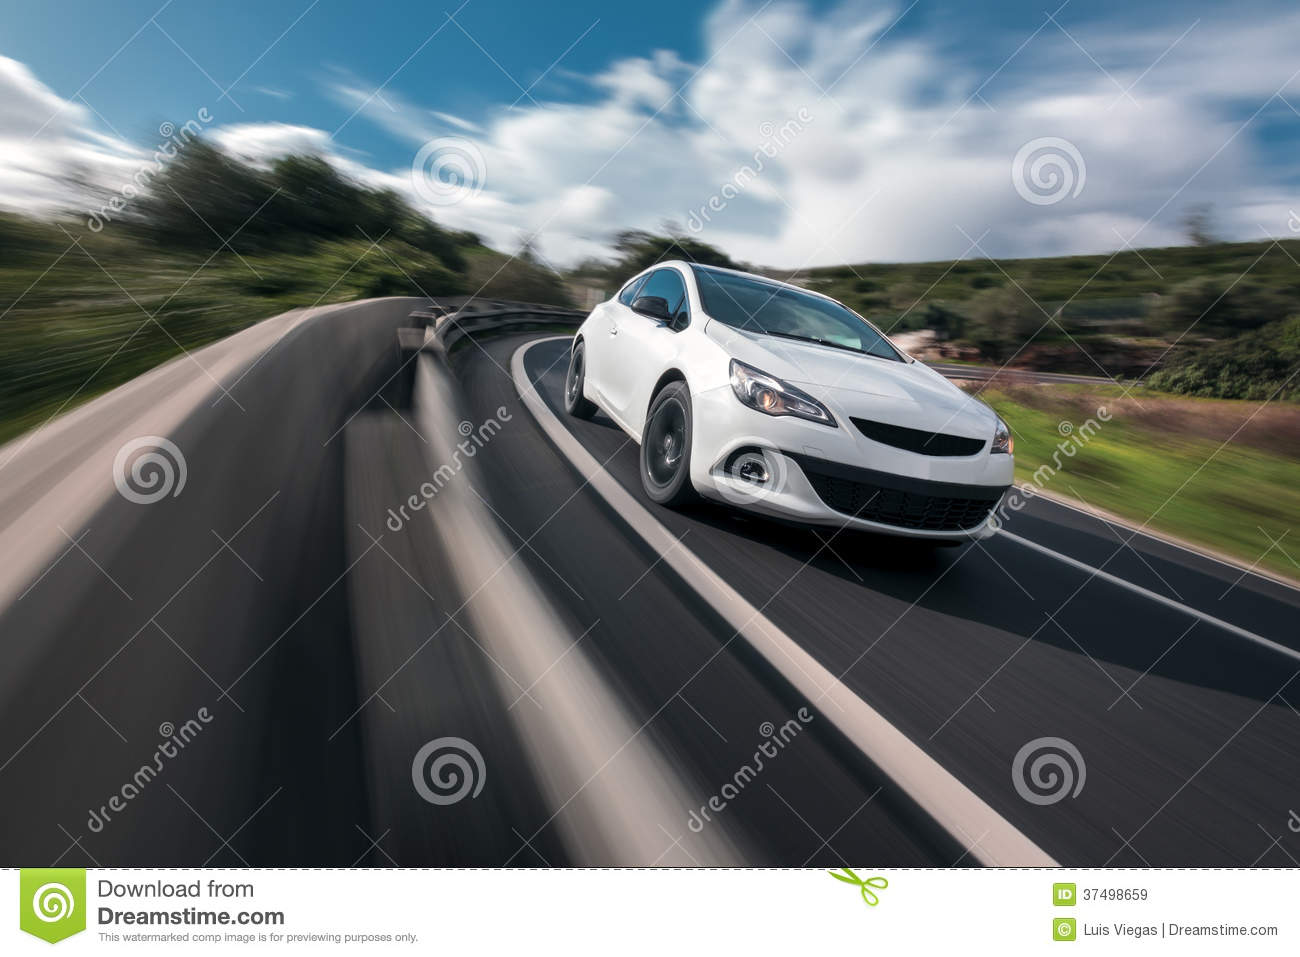 BMW Mountain View >> White Car Cornering In Mountain Road Stock Image - Image ...